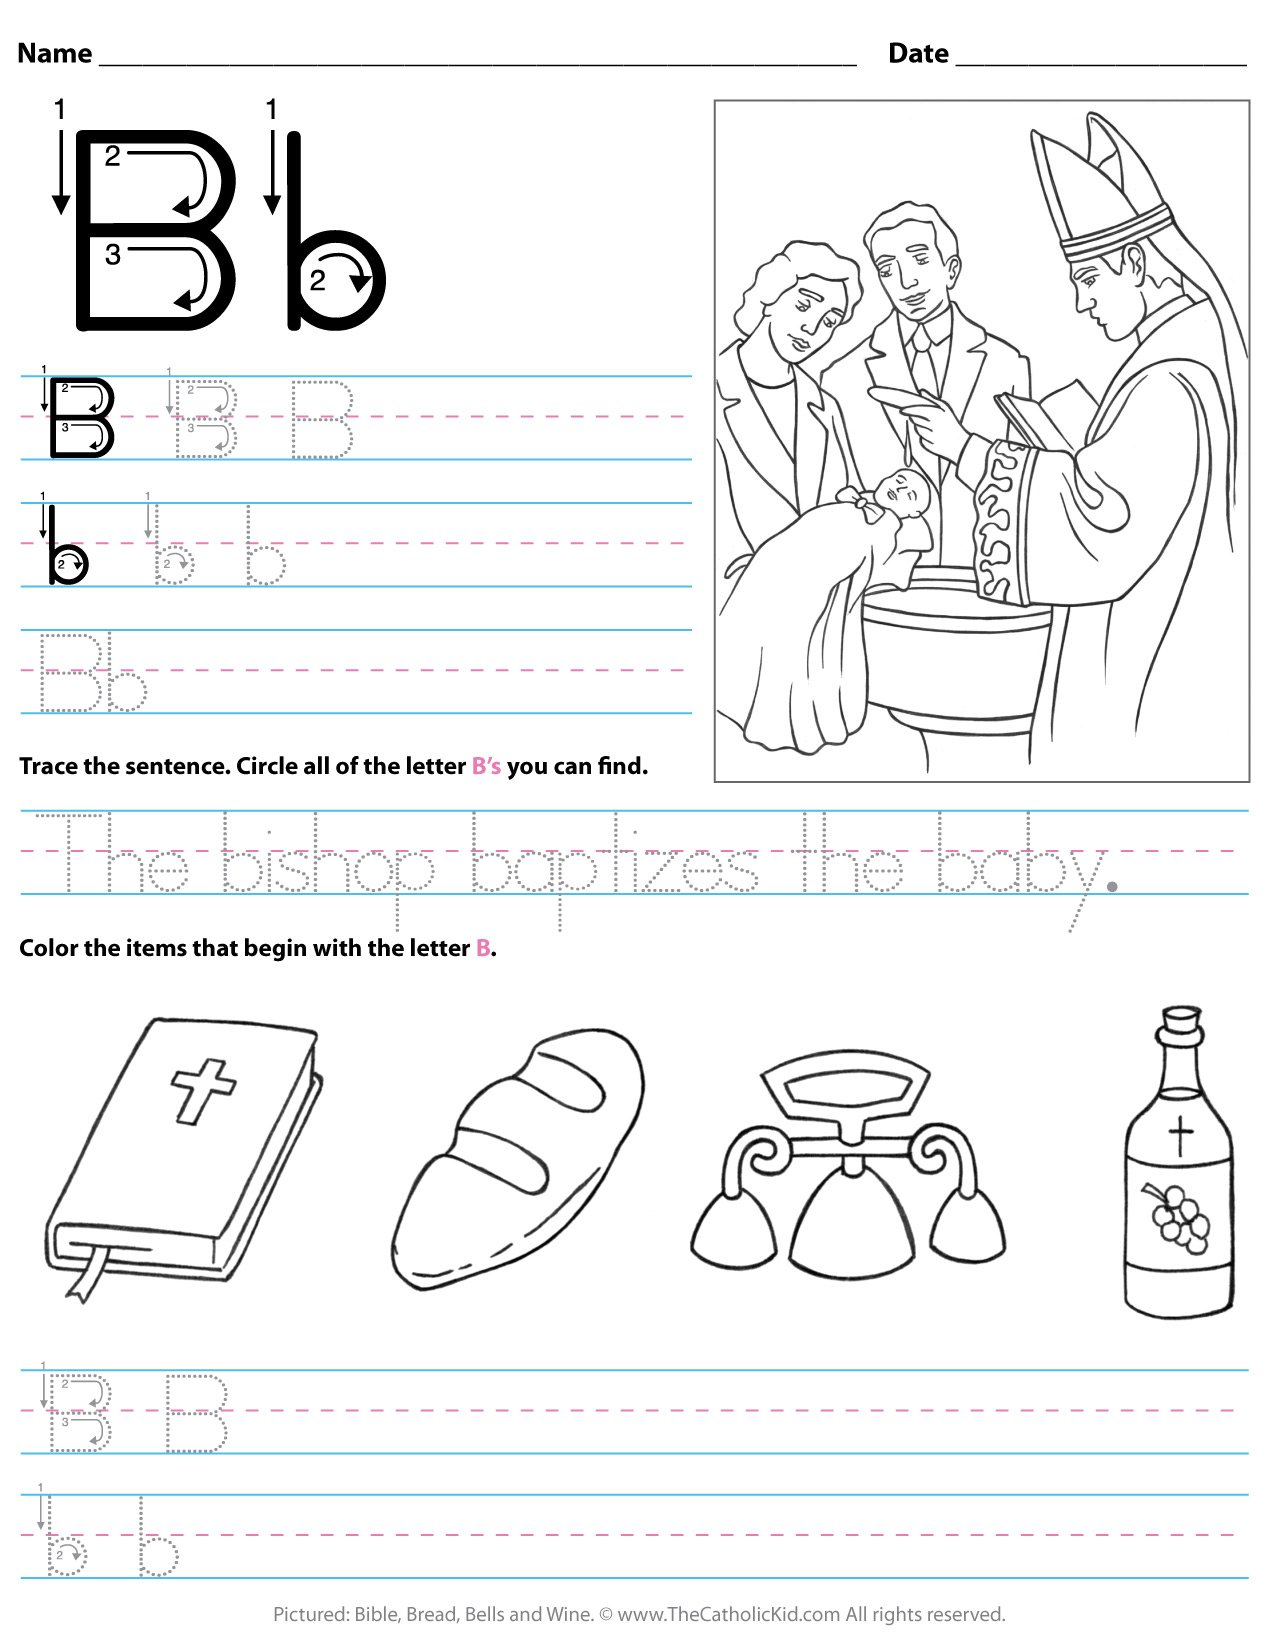 Letter B Coloring Pages, Worksheets and Color Posters | 1650x1275